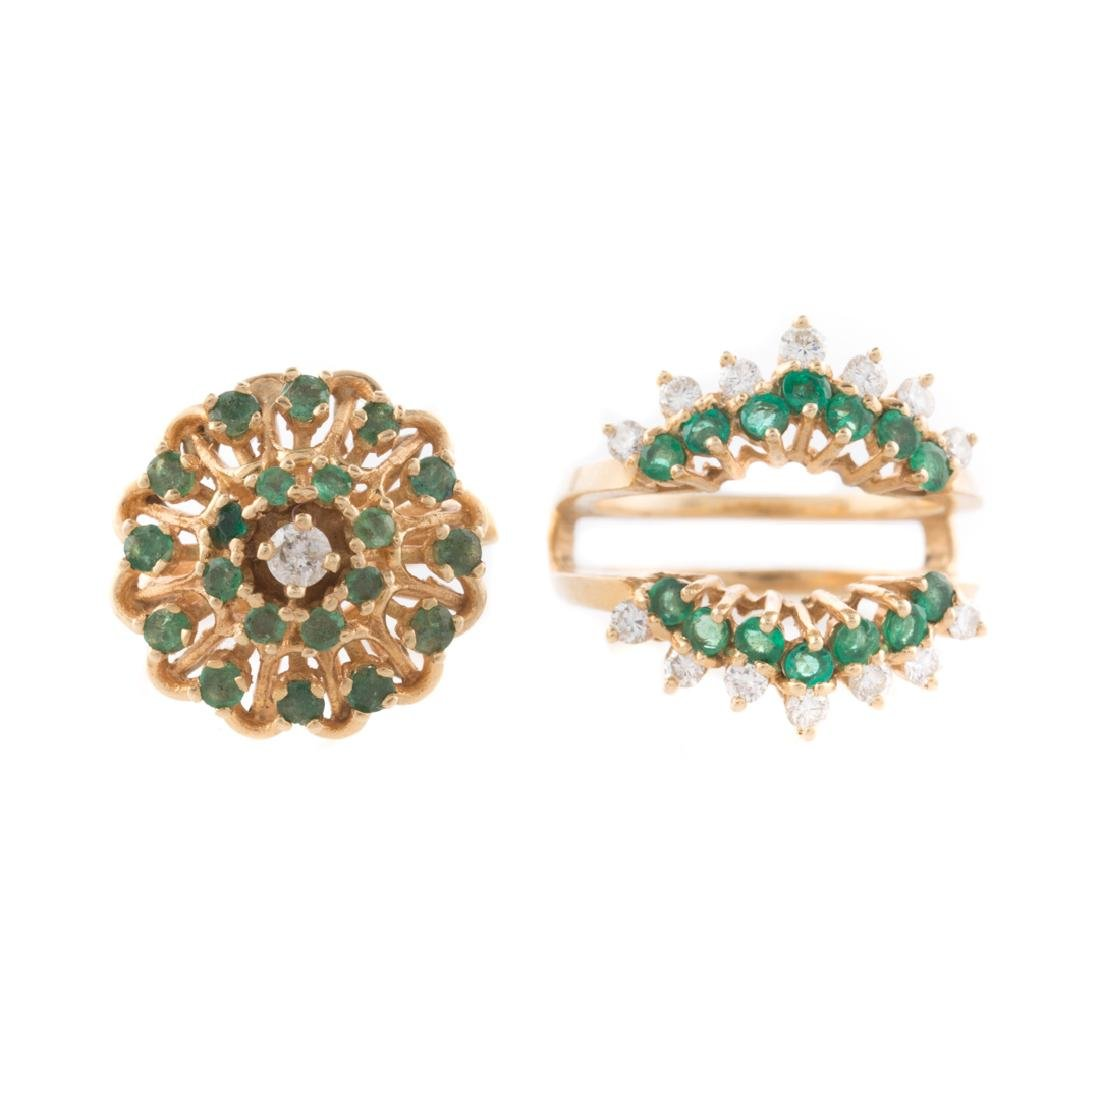 A Pair of 14K Gold Emerald and Diamond Rings